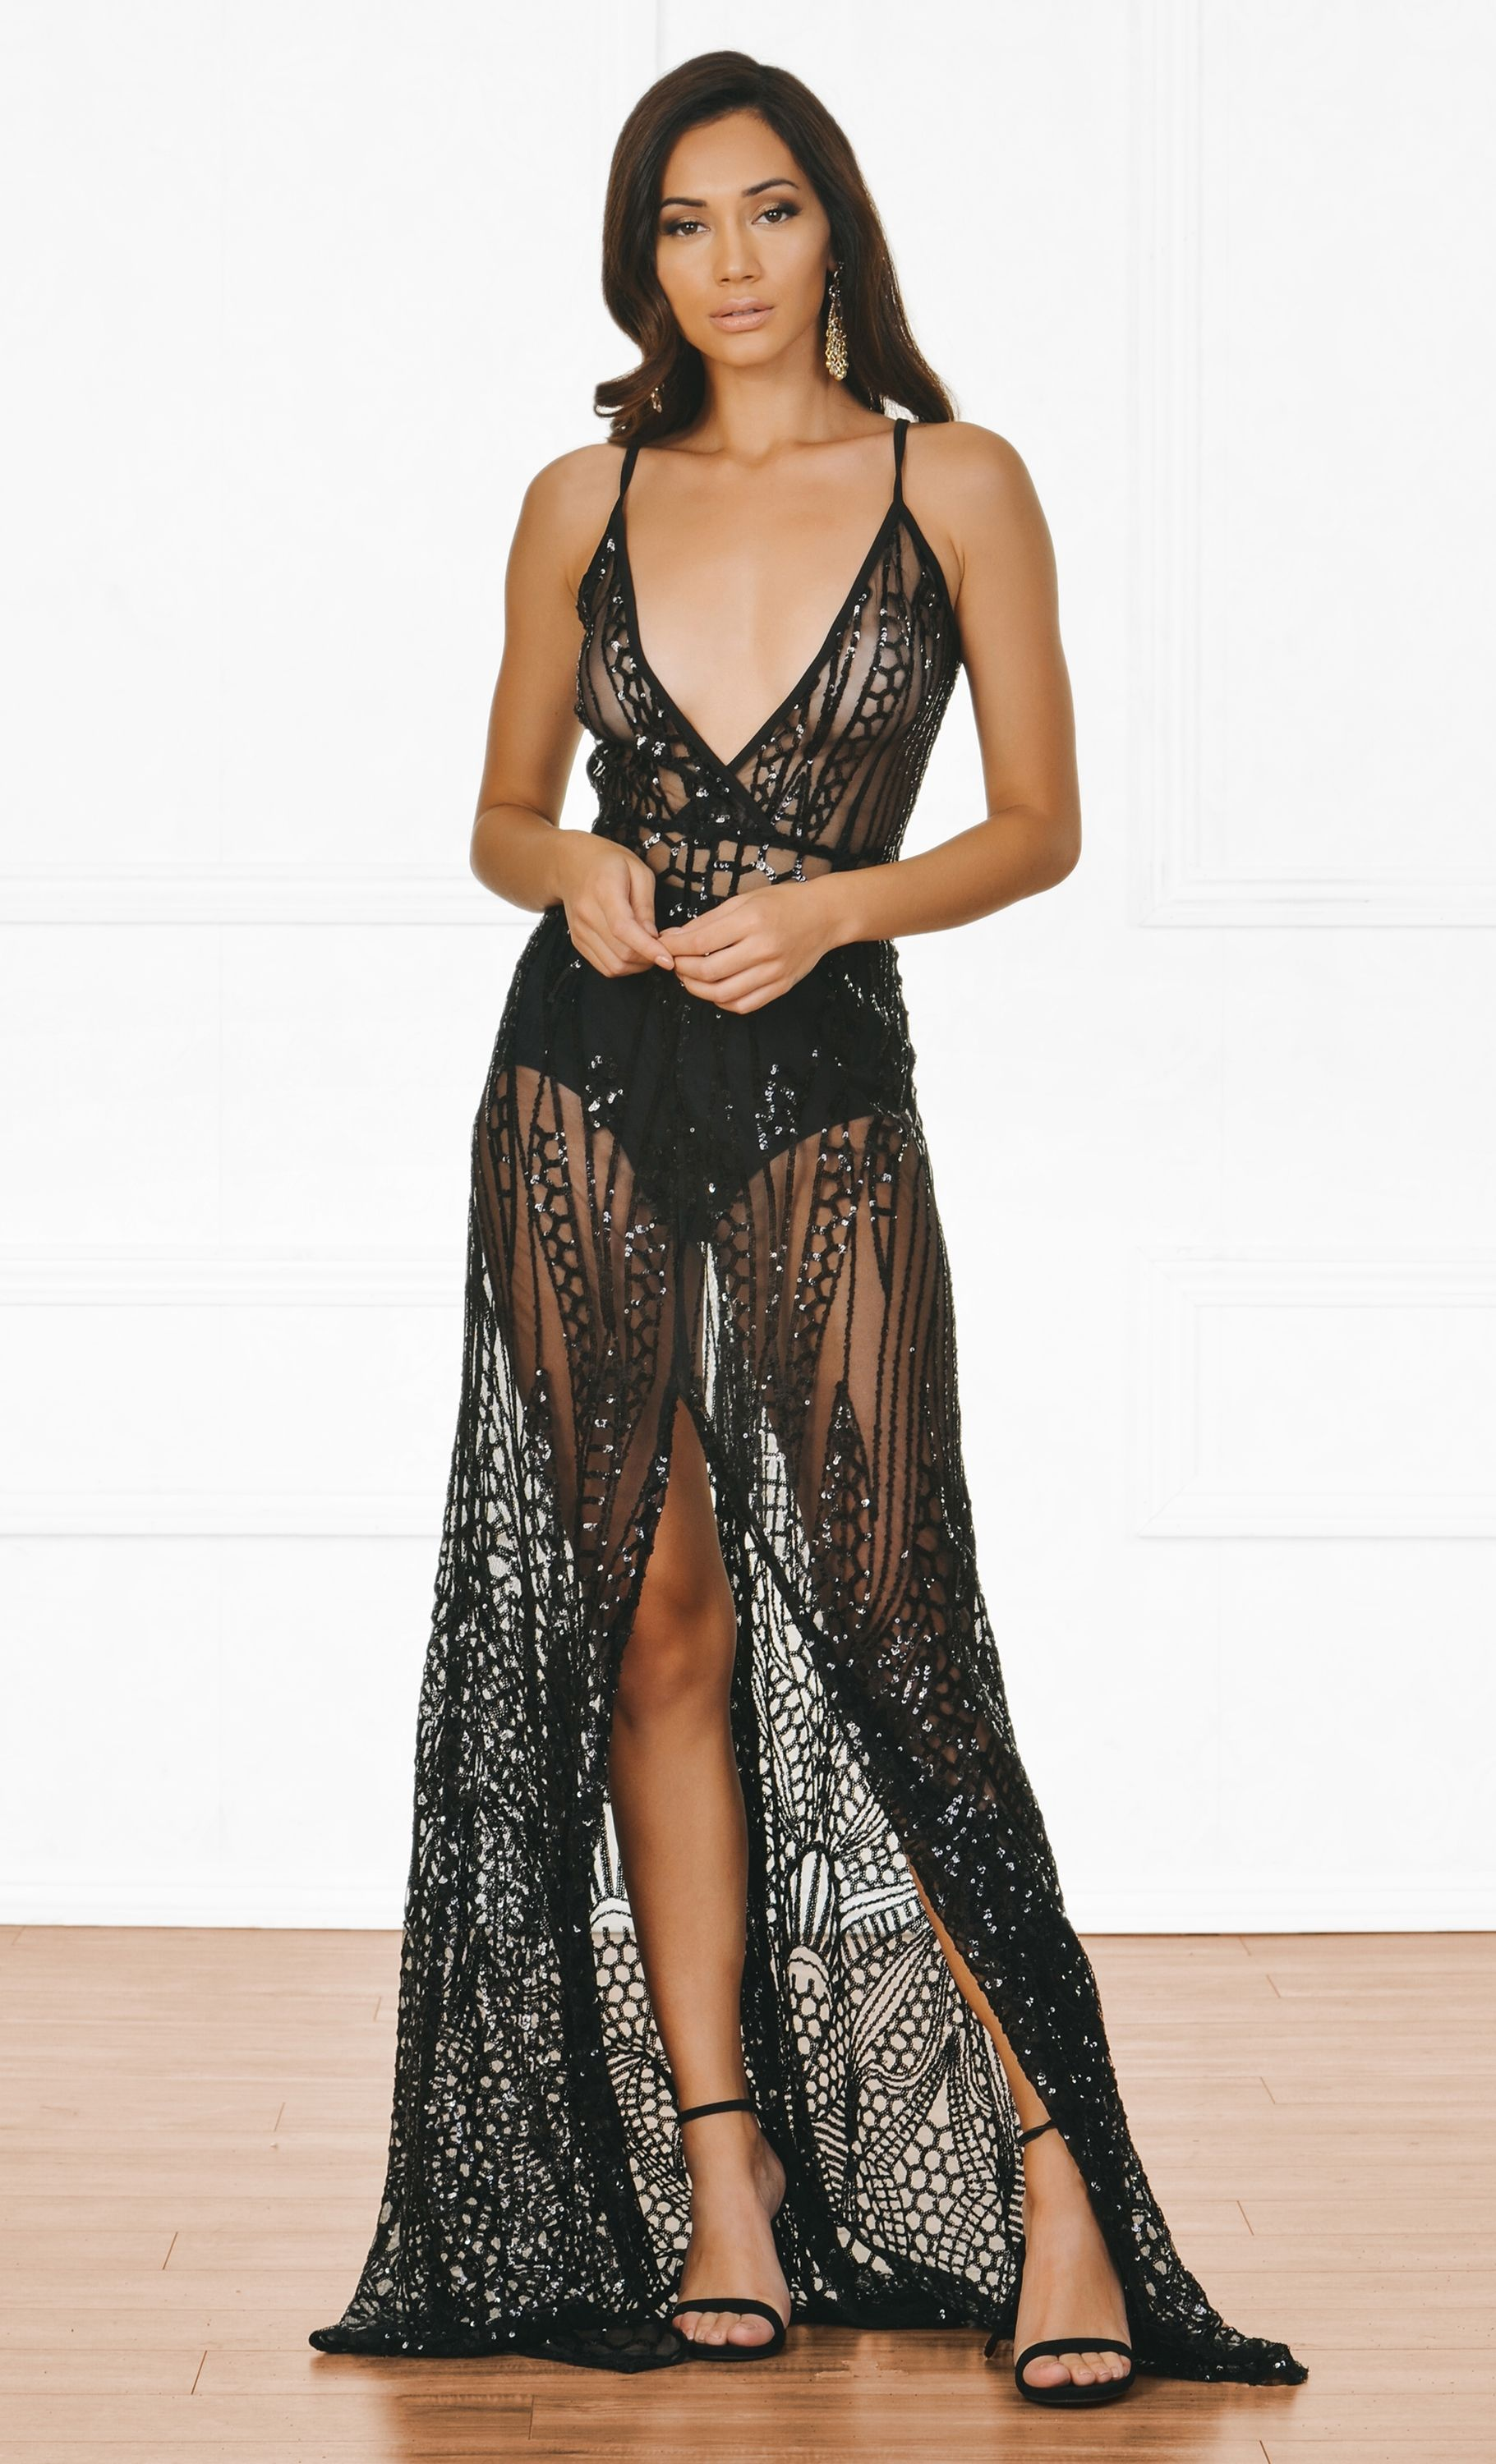 e1de44a88f Indie XO Cause A Scandal Black Sequin Sheer Glitter Geometric Spaghetti  Strap Deep V Neck Double Split Maxi Dress